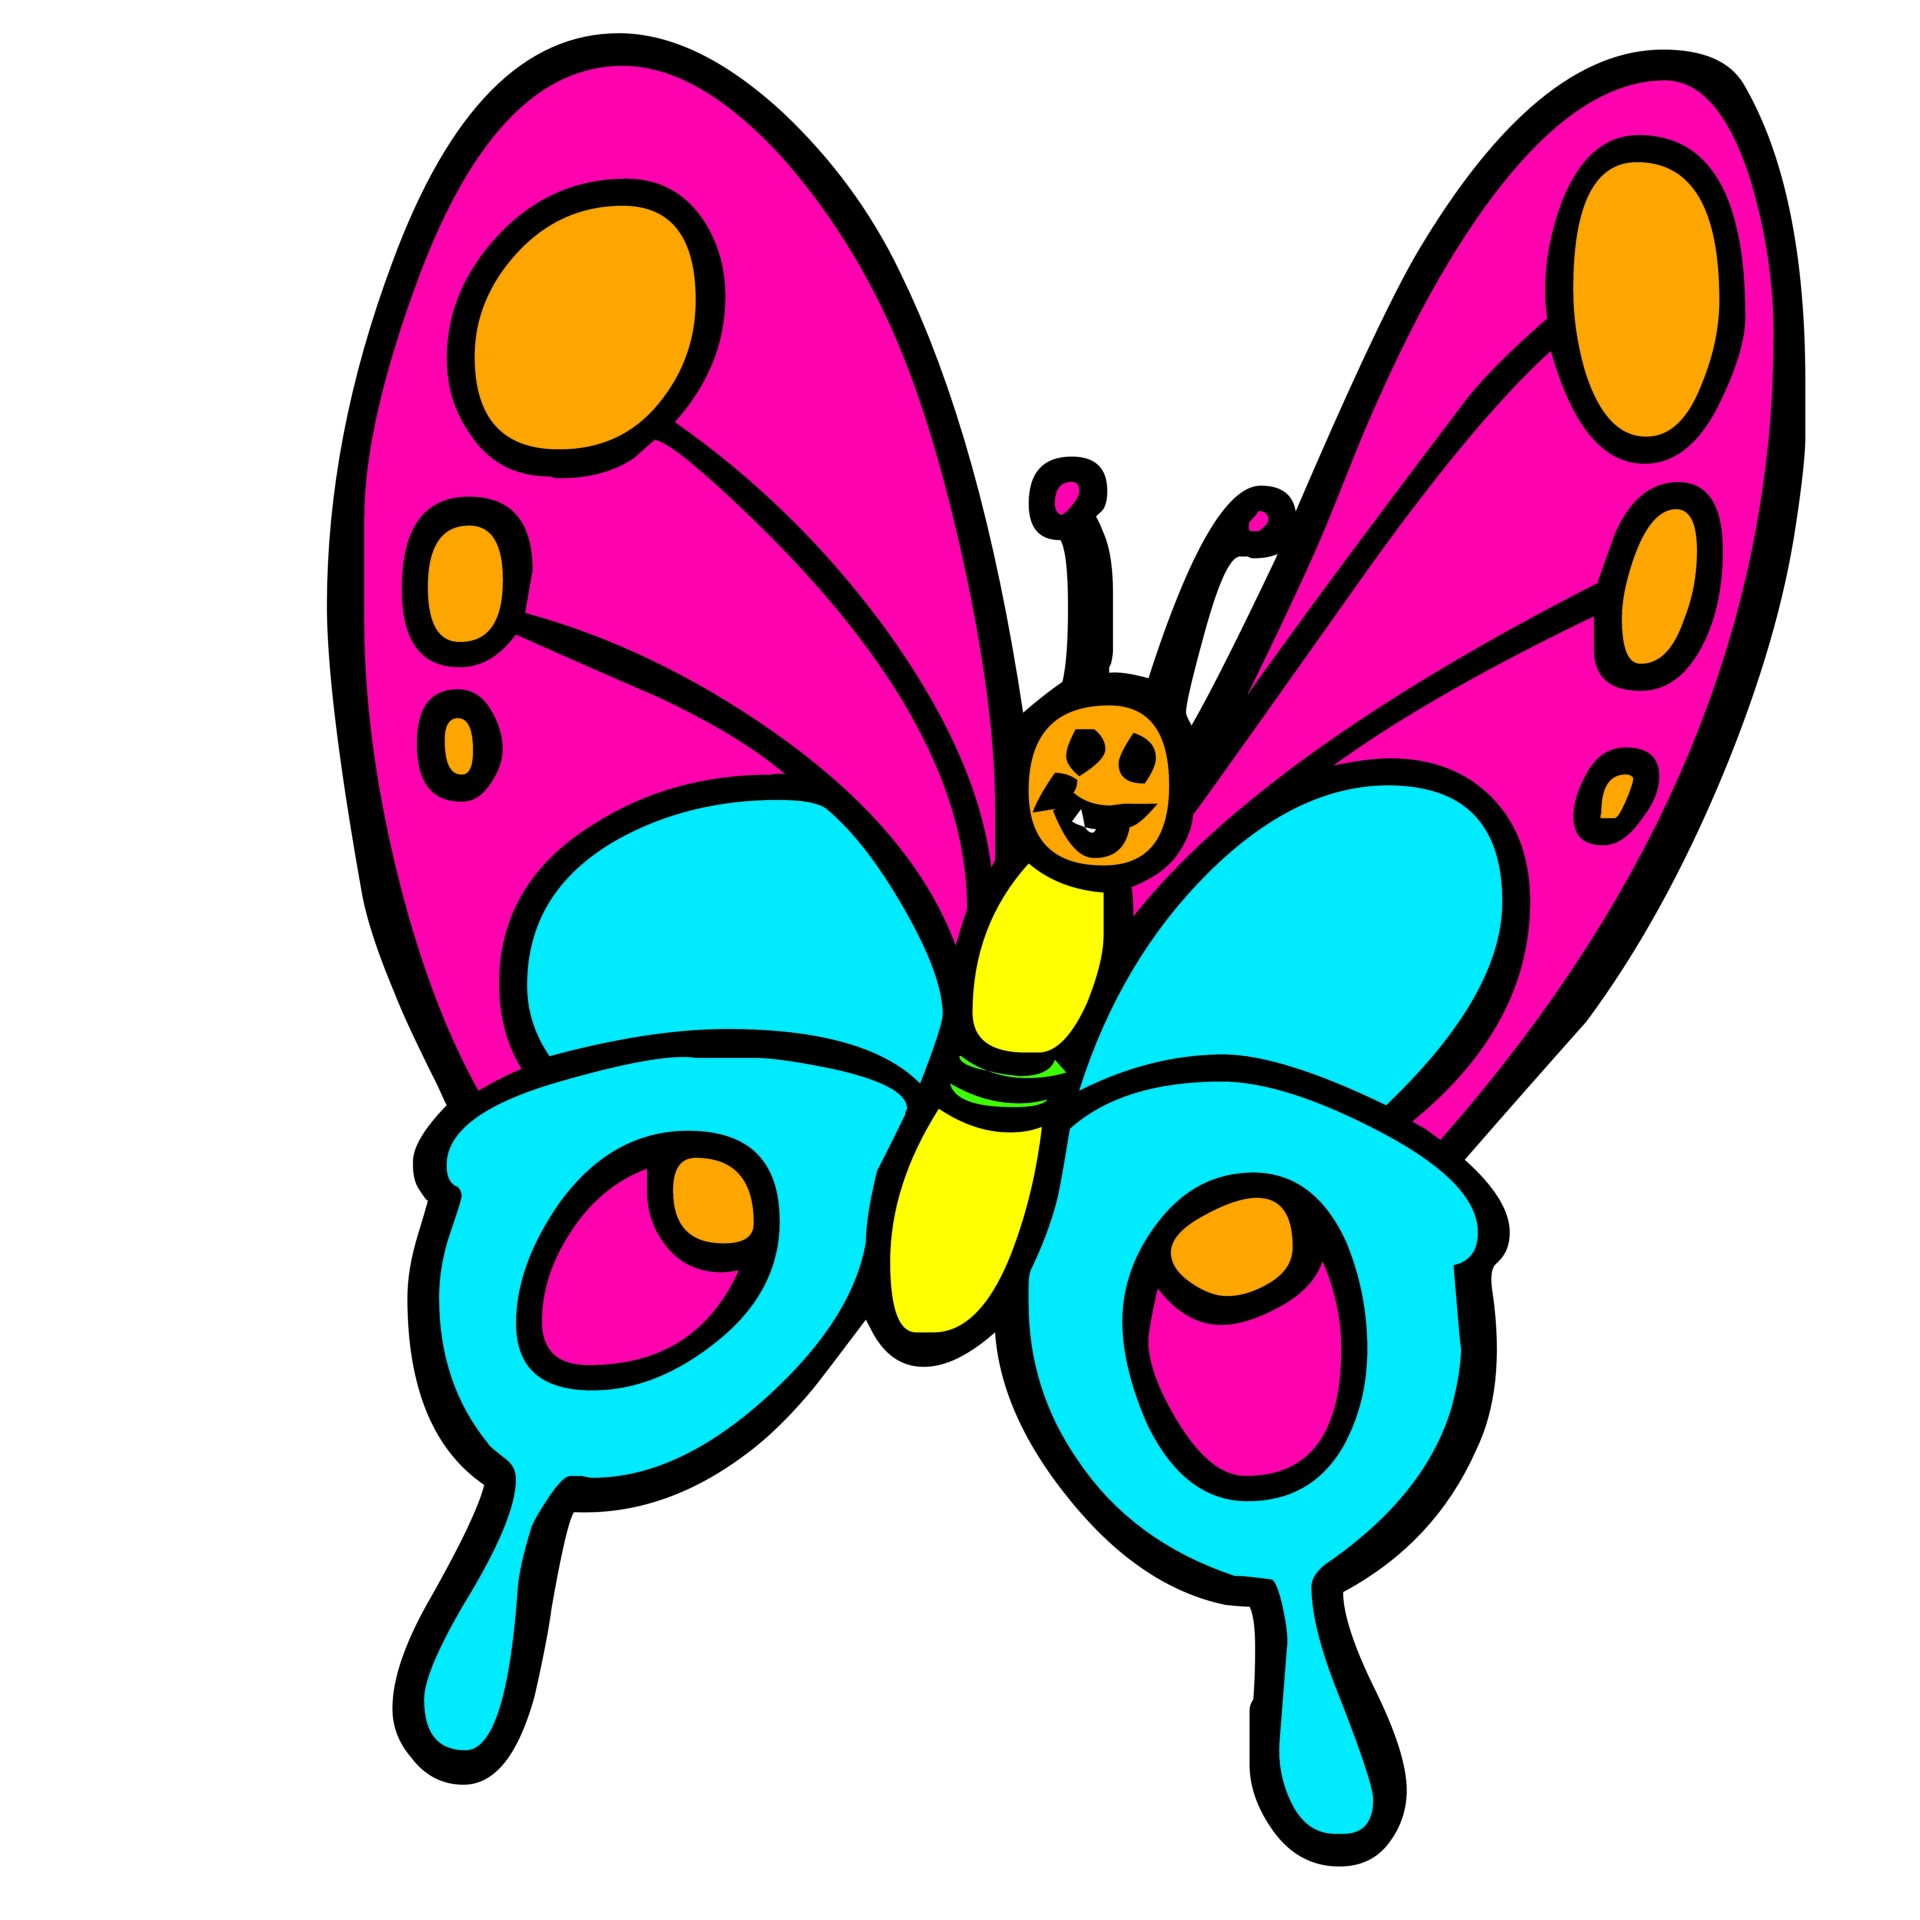 1920x1920 Collection Of Butterfly Drawings Buy Any Image And Use It